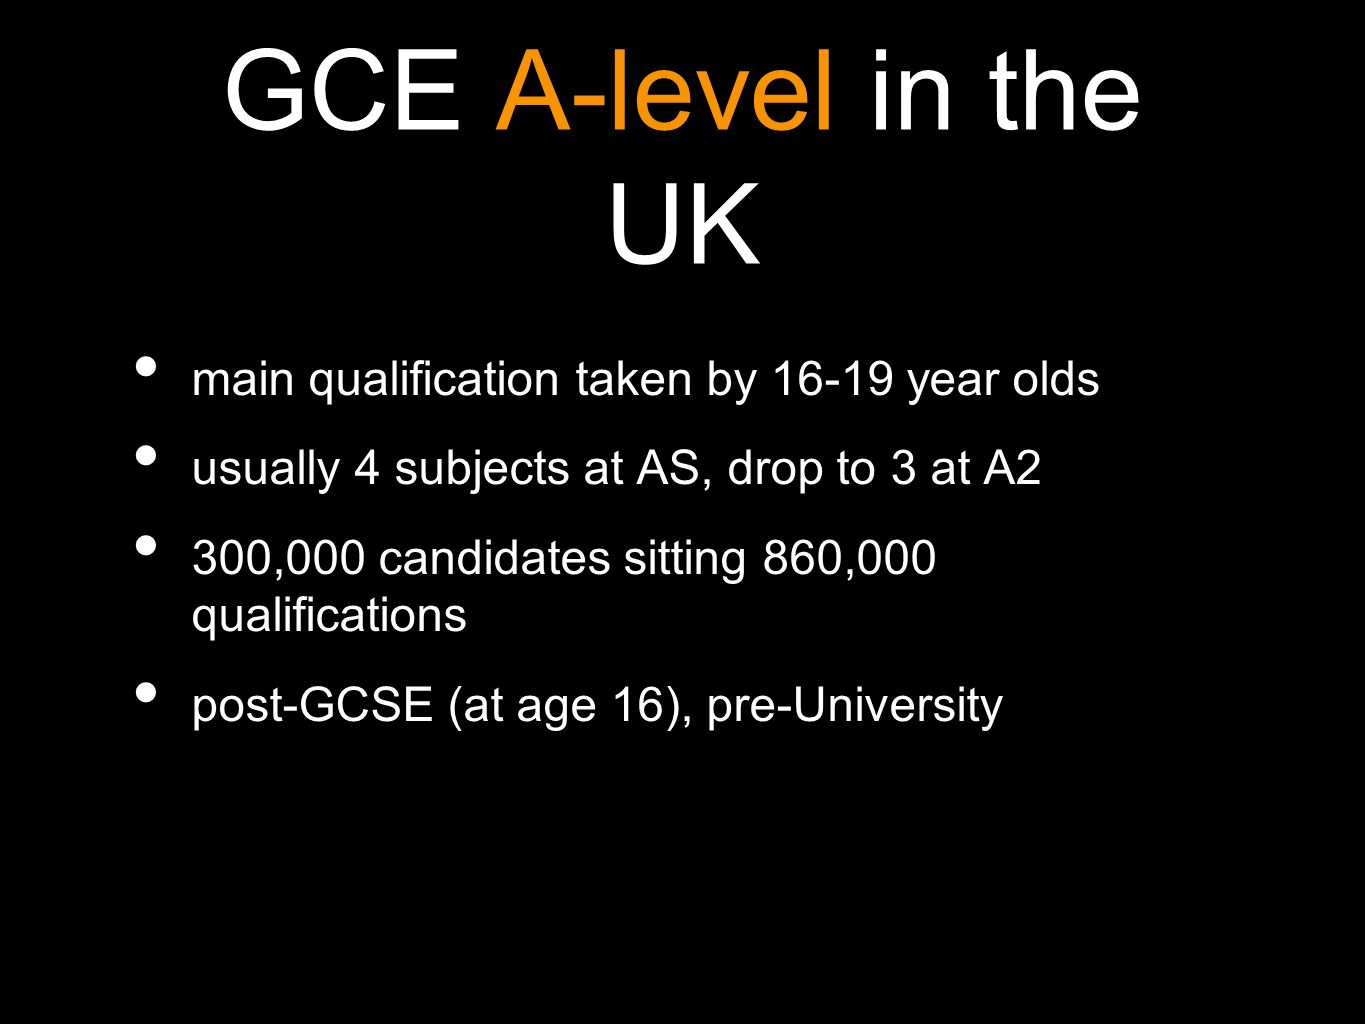 GCE A-level in the UK main qualification taken by 16-19 year olds usually 4 subjects at AS, drop to 3 at A2 300,000 candidates sitting 860,000 qualifications post-GCSE (at age 16), pre-University